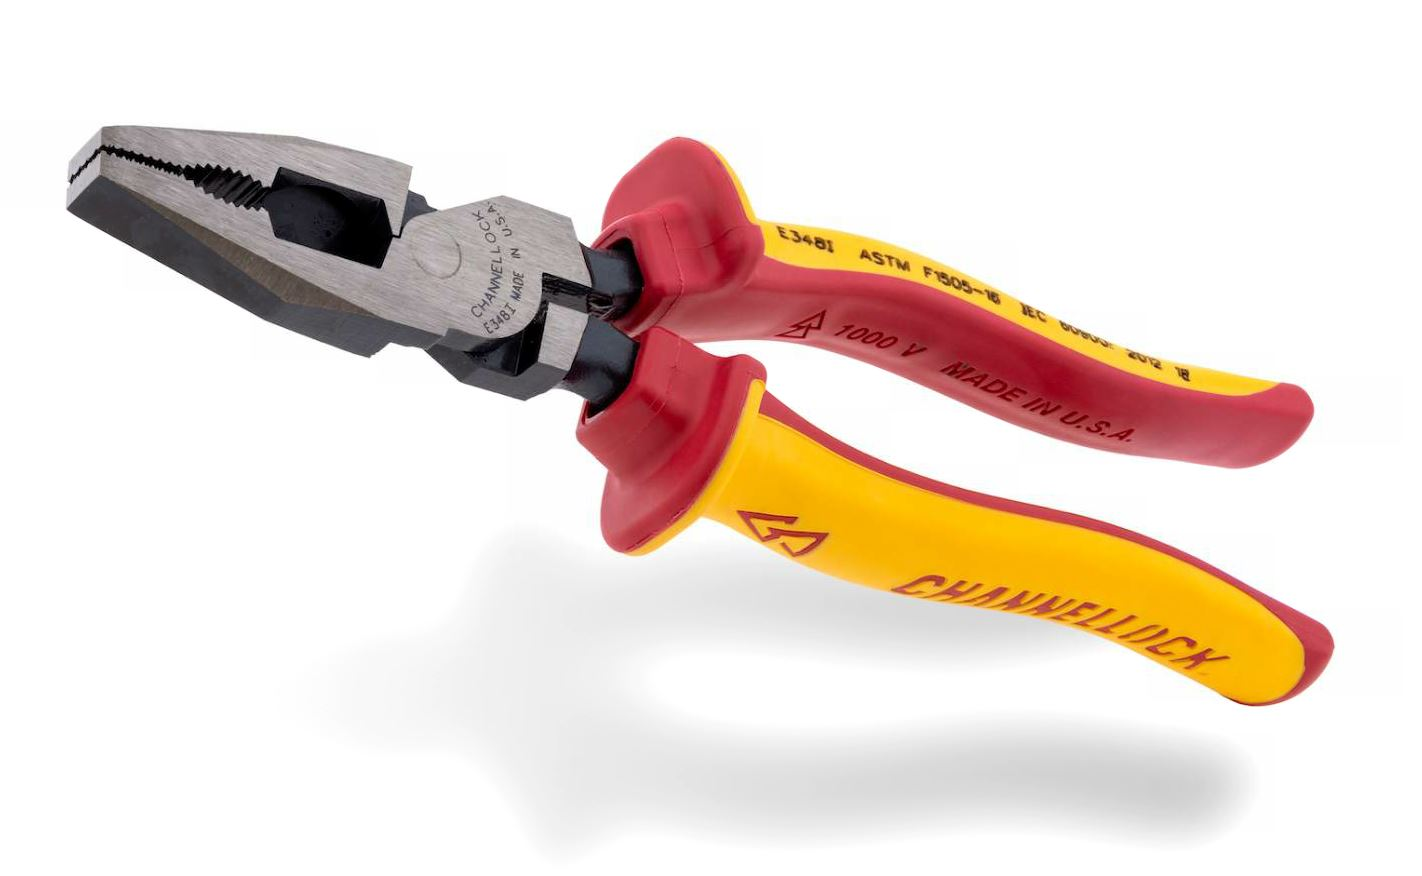 The new line of insulated pliers from Channellock includes four tools.